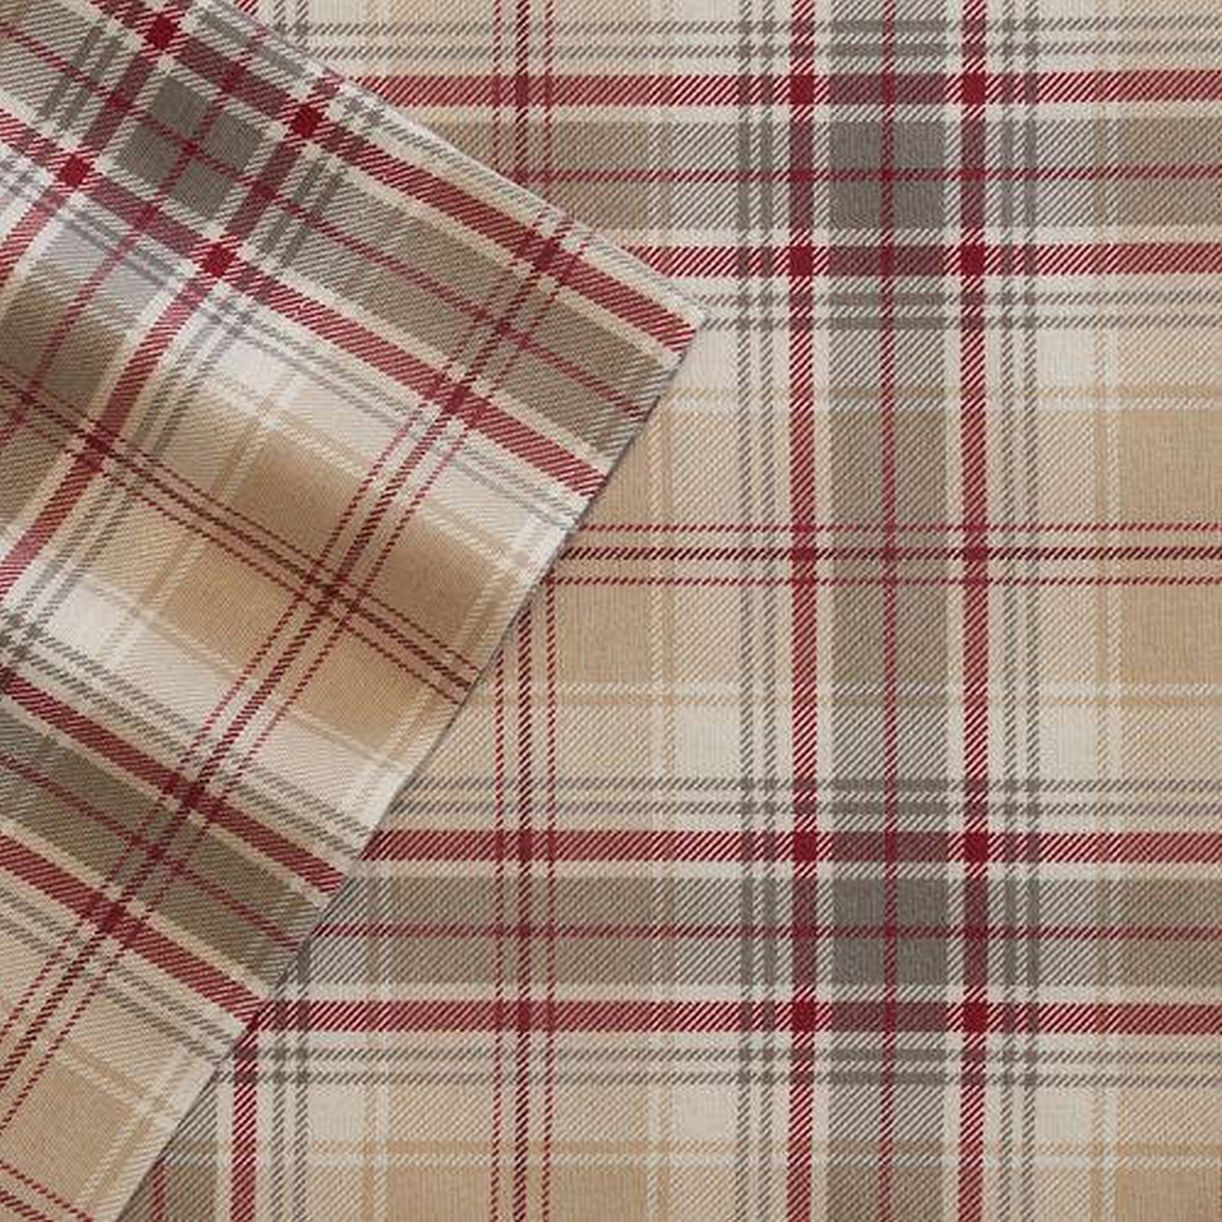 Cuddle Duds Tan & Red Plaid Flannel Sheet Set Queen Bed